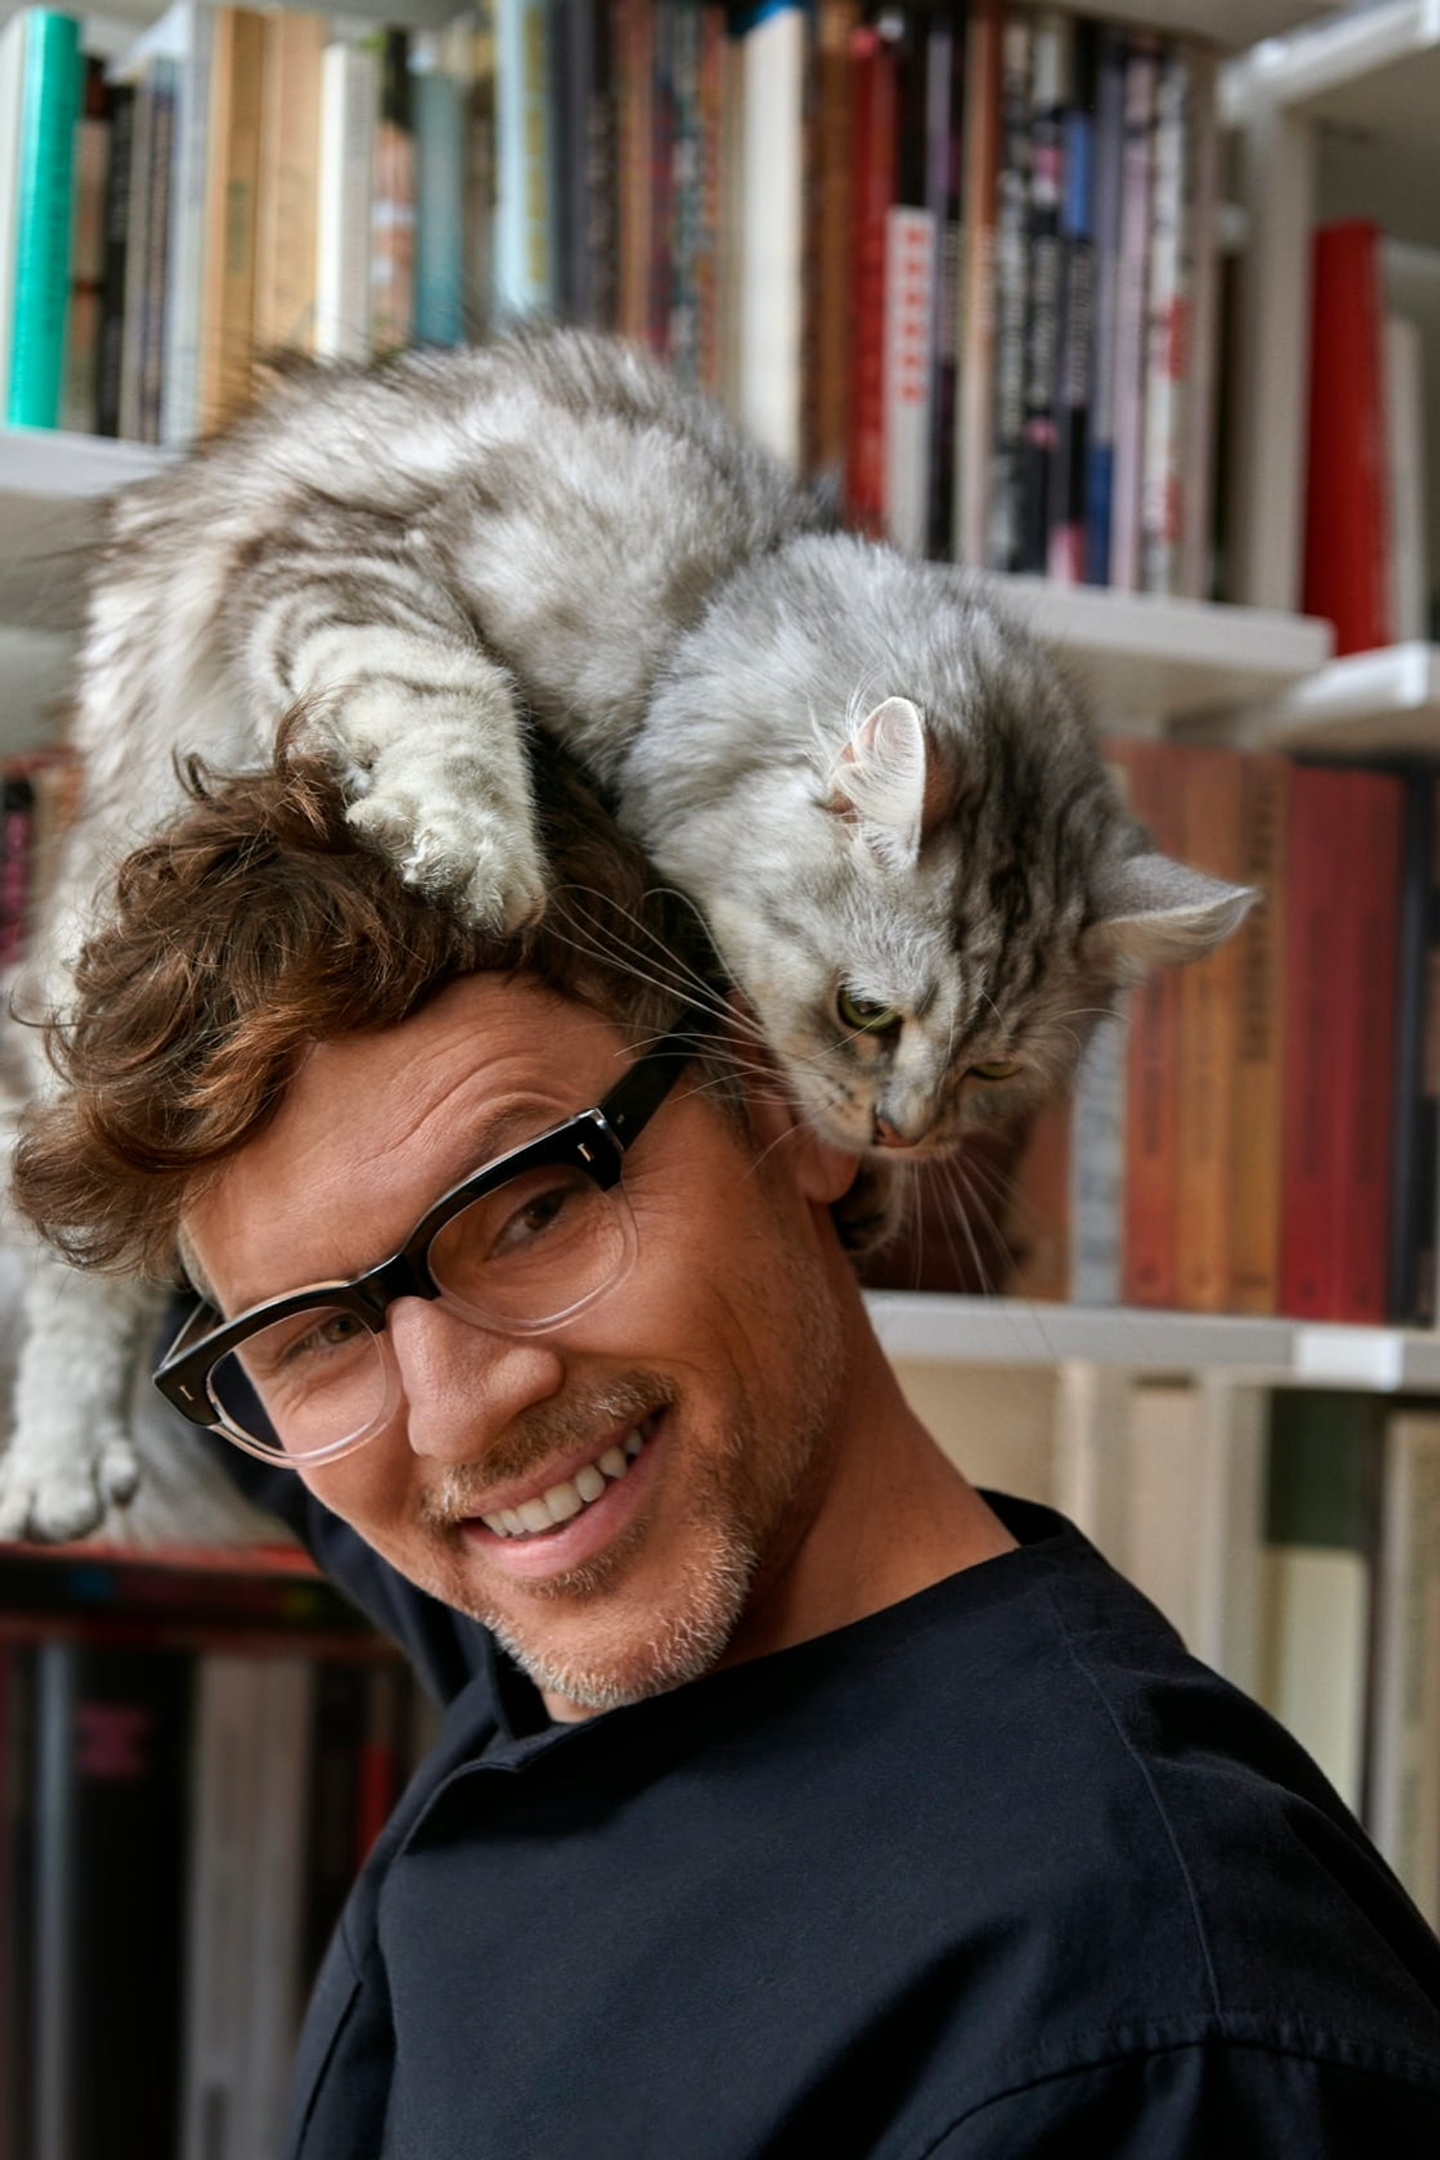 Man in glasses with cat climbing on his head